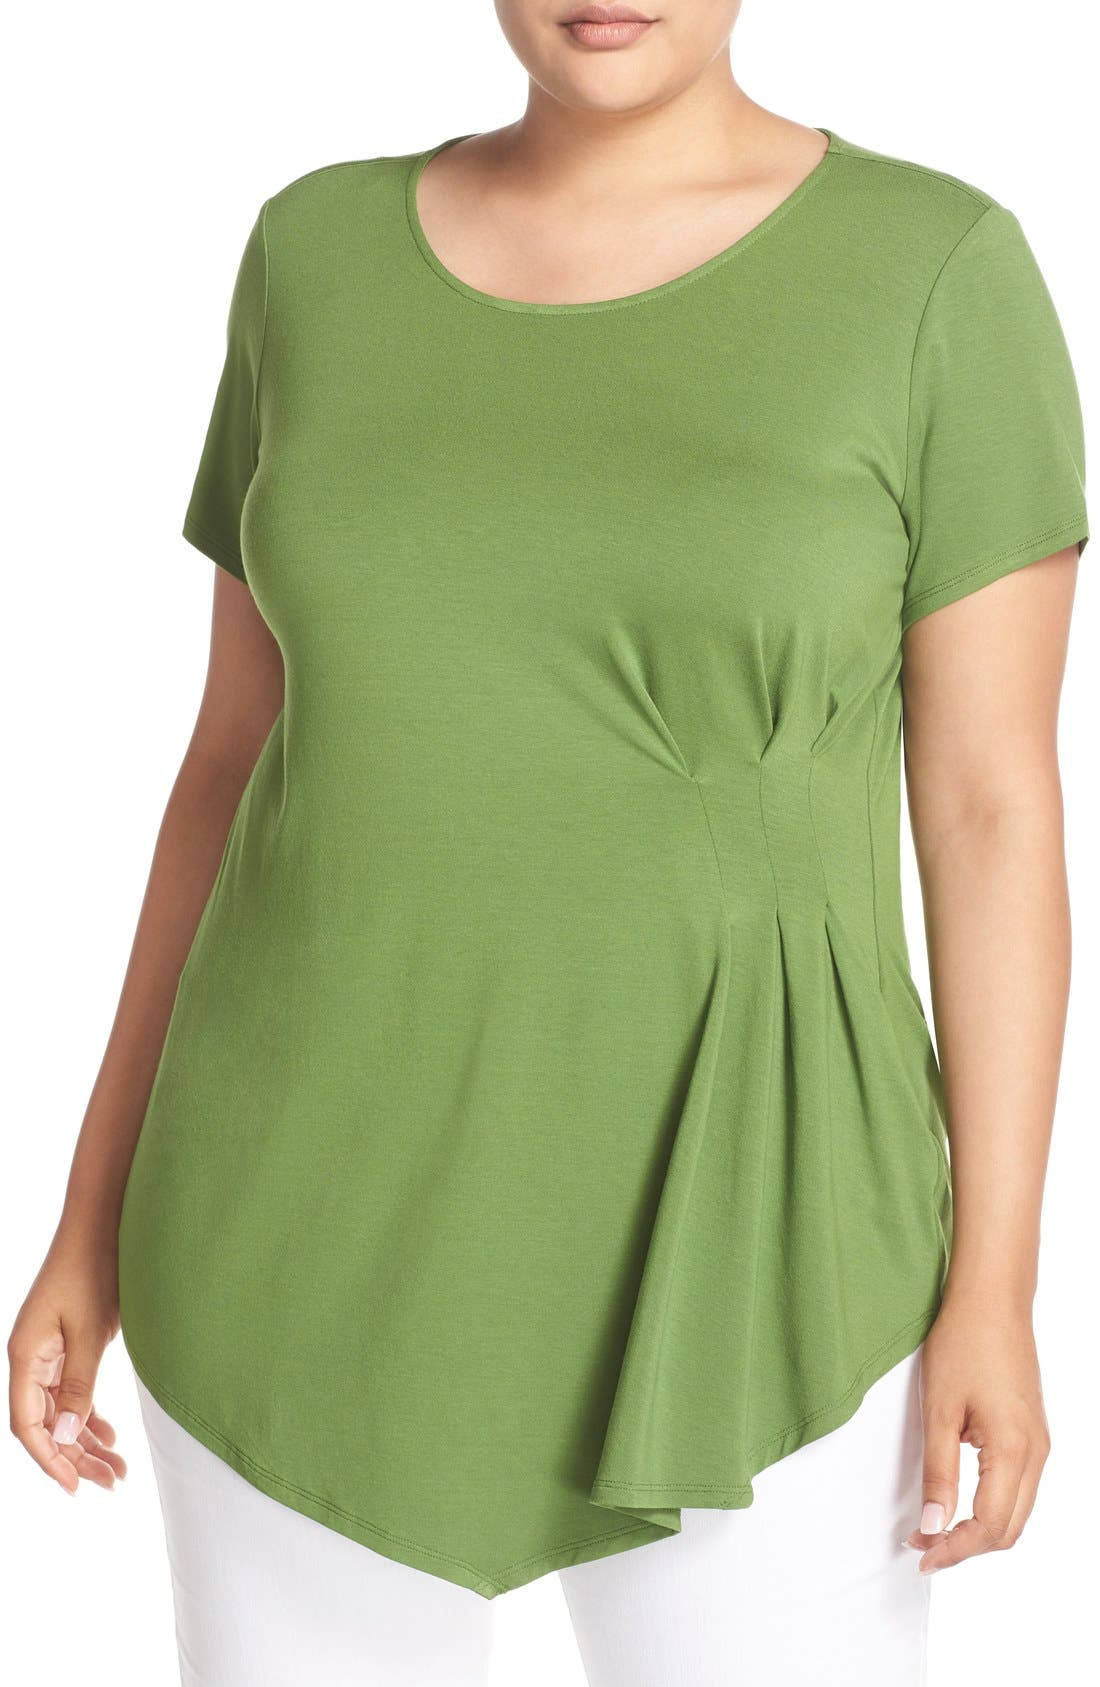 Alternate Image 1 Selected - Vince Camuto Short Sleeve Side Pleat Asymmetrical Top (Plus Size)